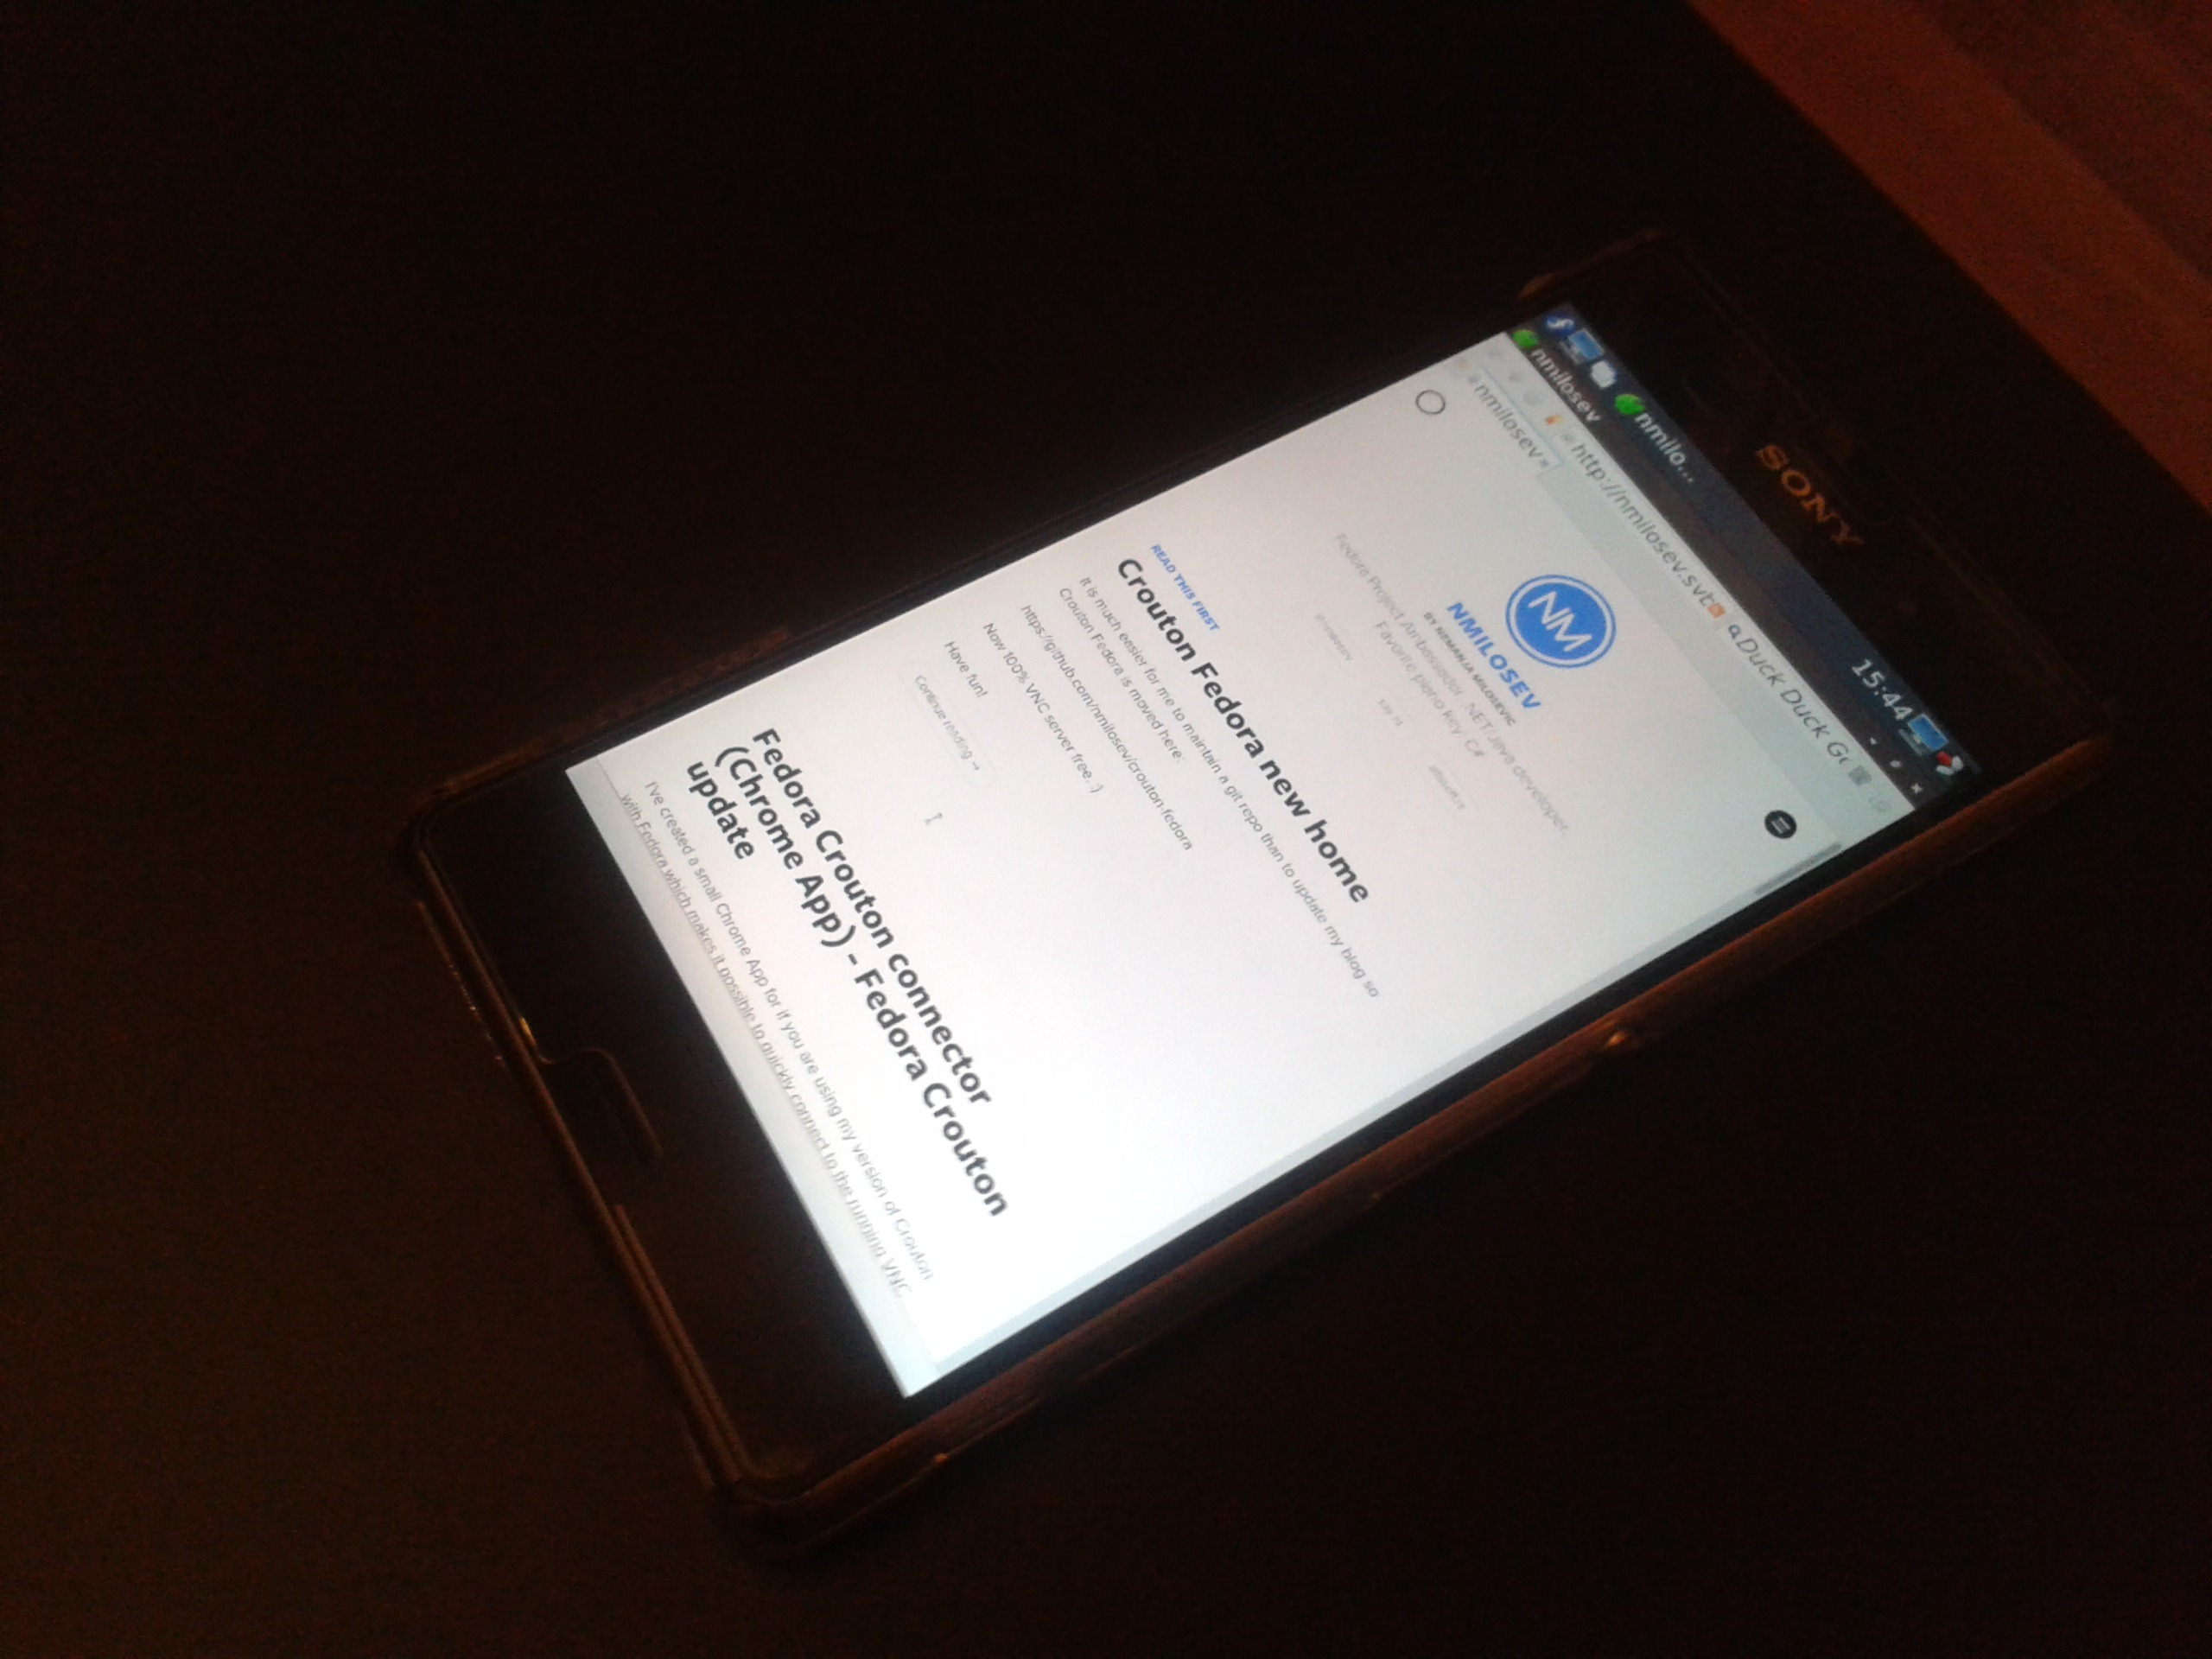 Fedora on non-rooted Android phones - 2016 update